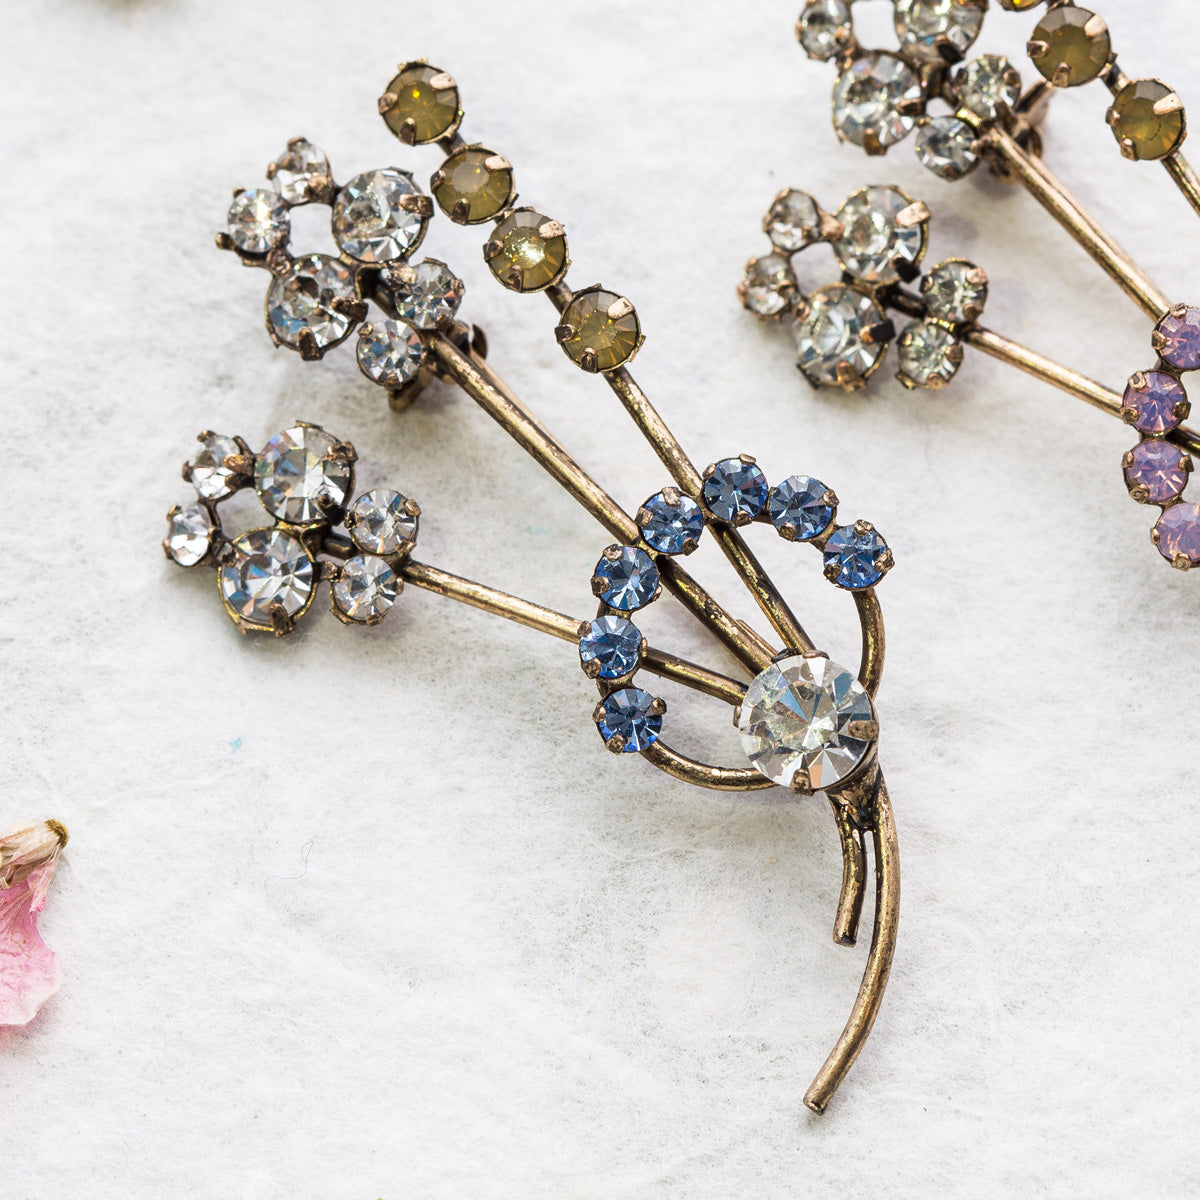 Rachel blue crystal brooch